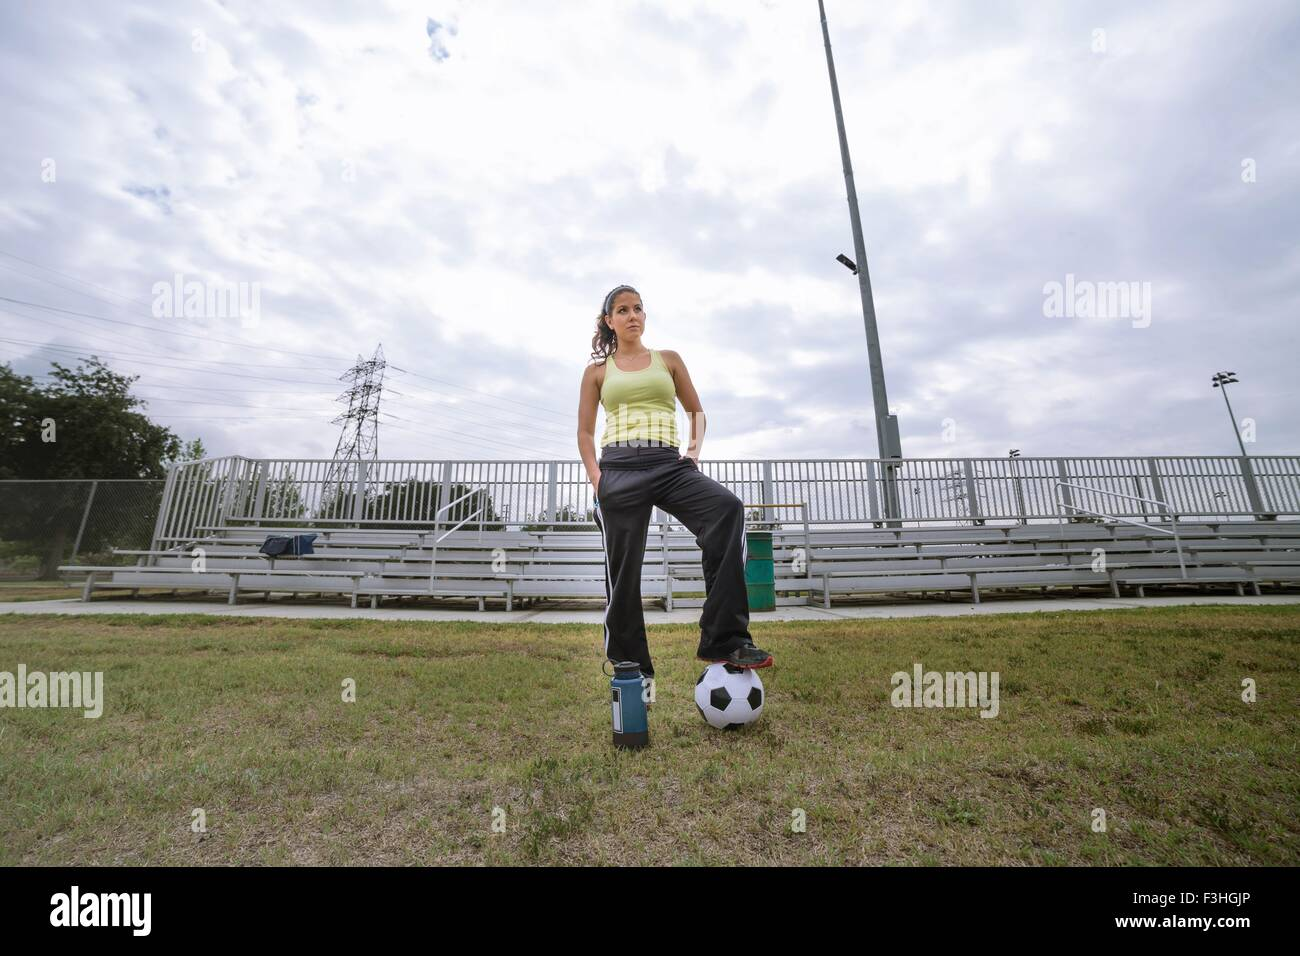 Soccer player stepping on ball in field - Stock Image